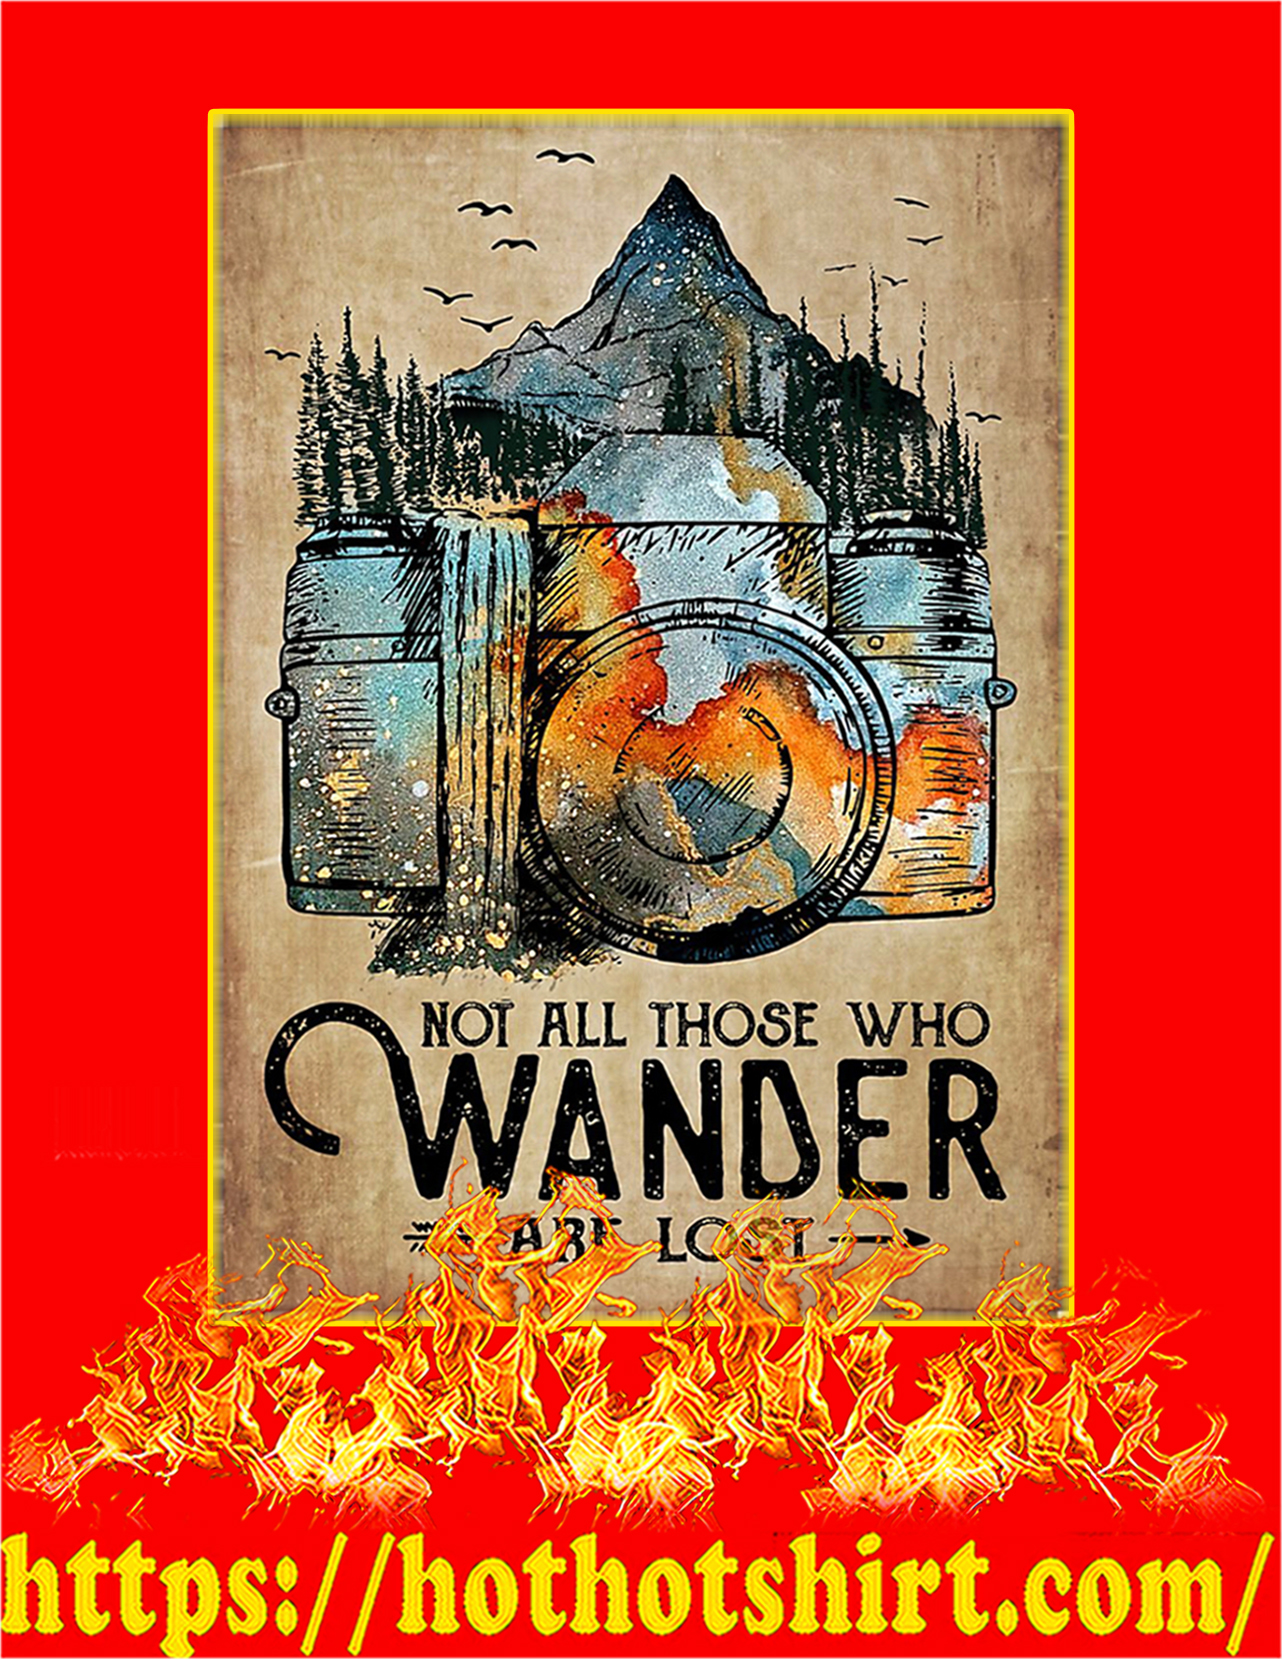 Photographer not all those who wander are lost poster - A4